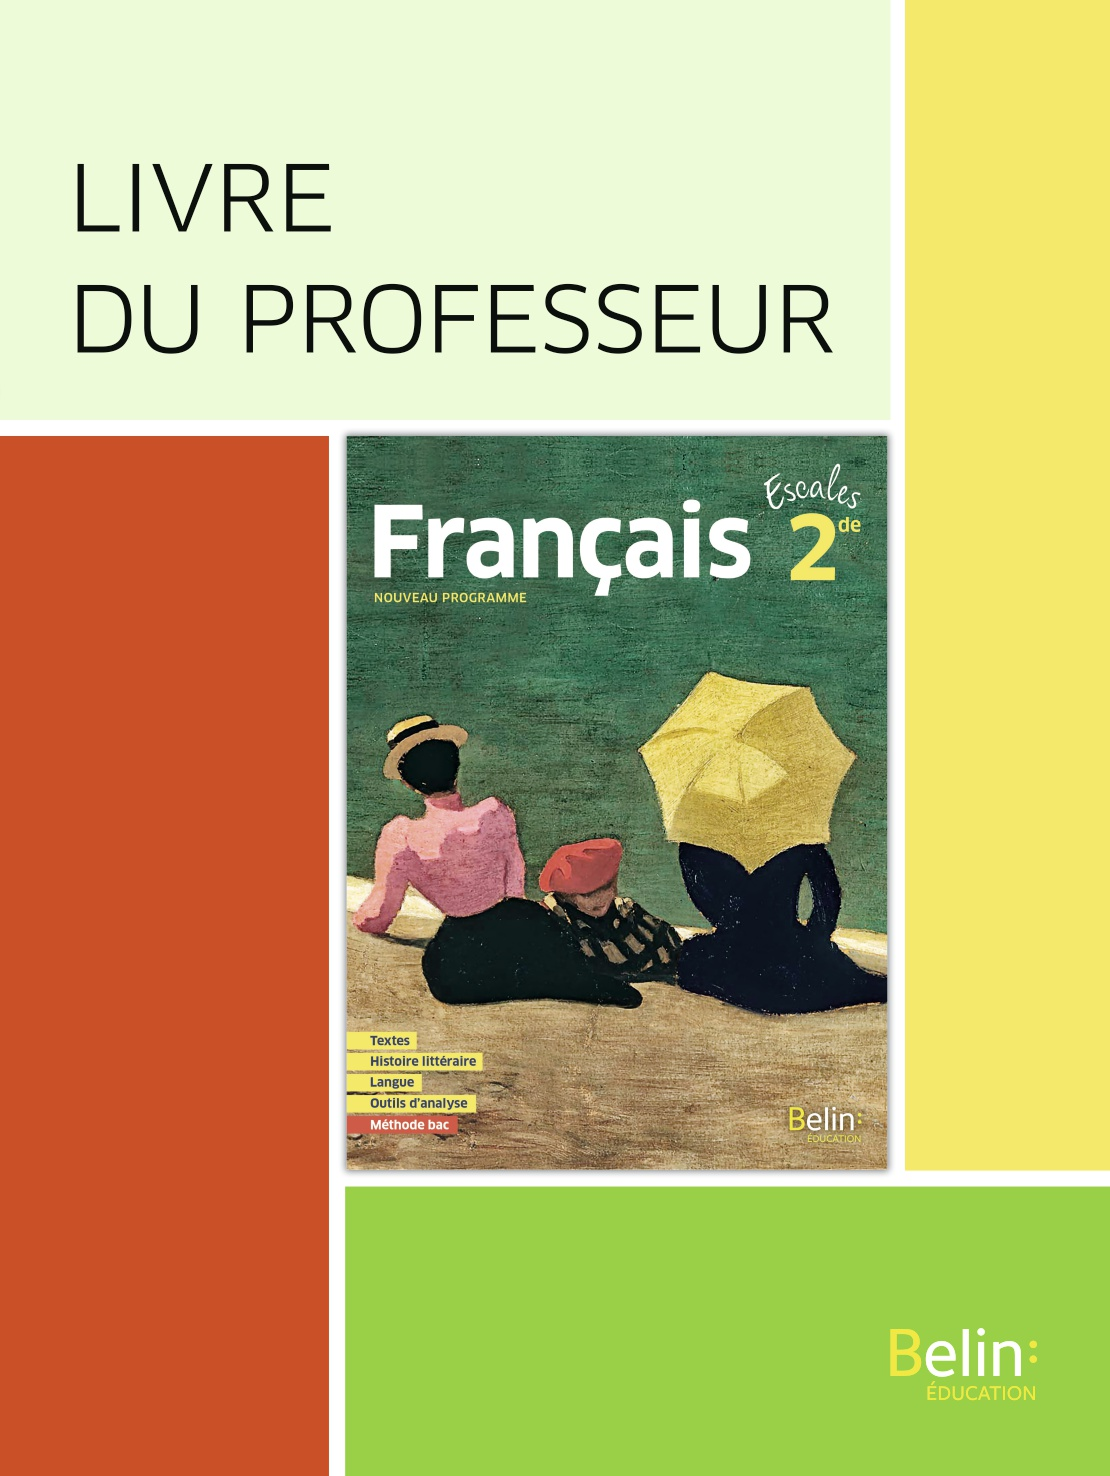 Francais Seconde 2019 Livre Du Professeur Belin Education